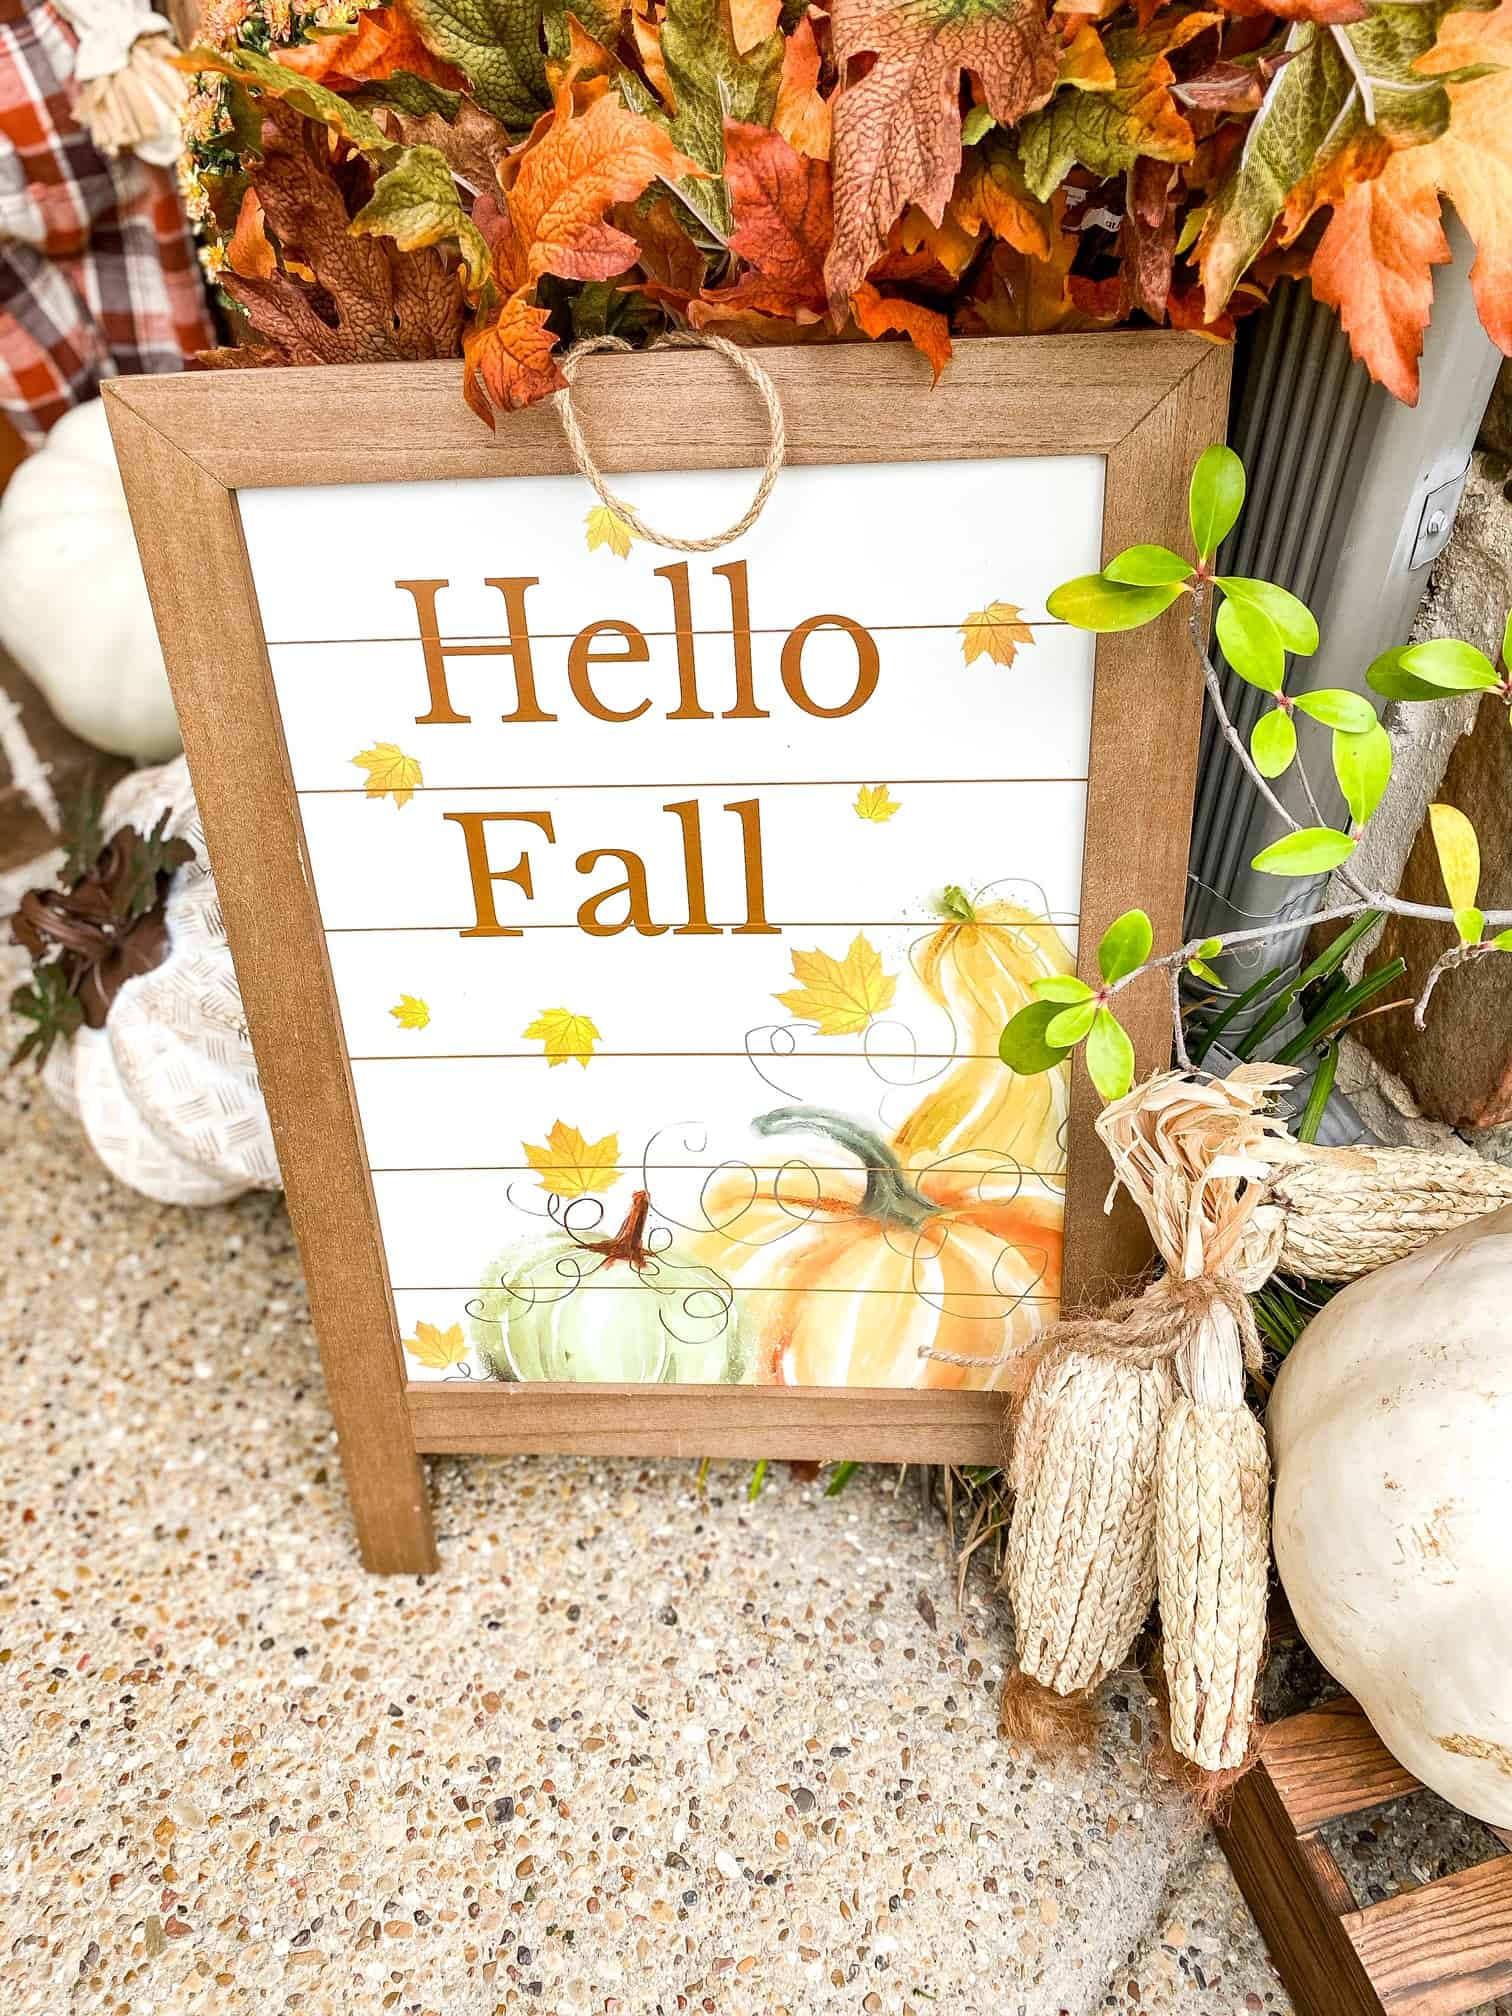 Fall Front Porch Ideas by popular Dallas life and style blog, Glamorous Versatility: image of two doodle breed dogs sitting on a front porch that decorated with a At Home scarecrow, At home Give Thanks sign, At Home pumpkin Welcome sign, At Home wagon, At home Styrofoam pumpkins, potted mums, At Home Hello Fall wooden sign, and At Home fall wreath.